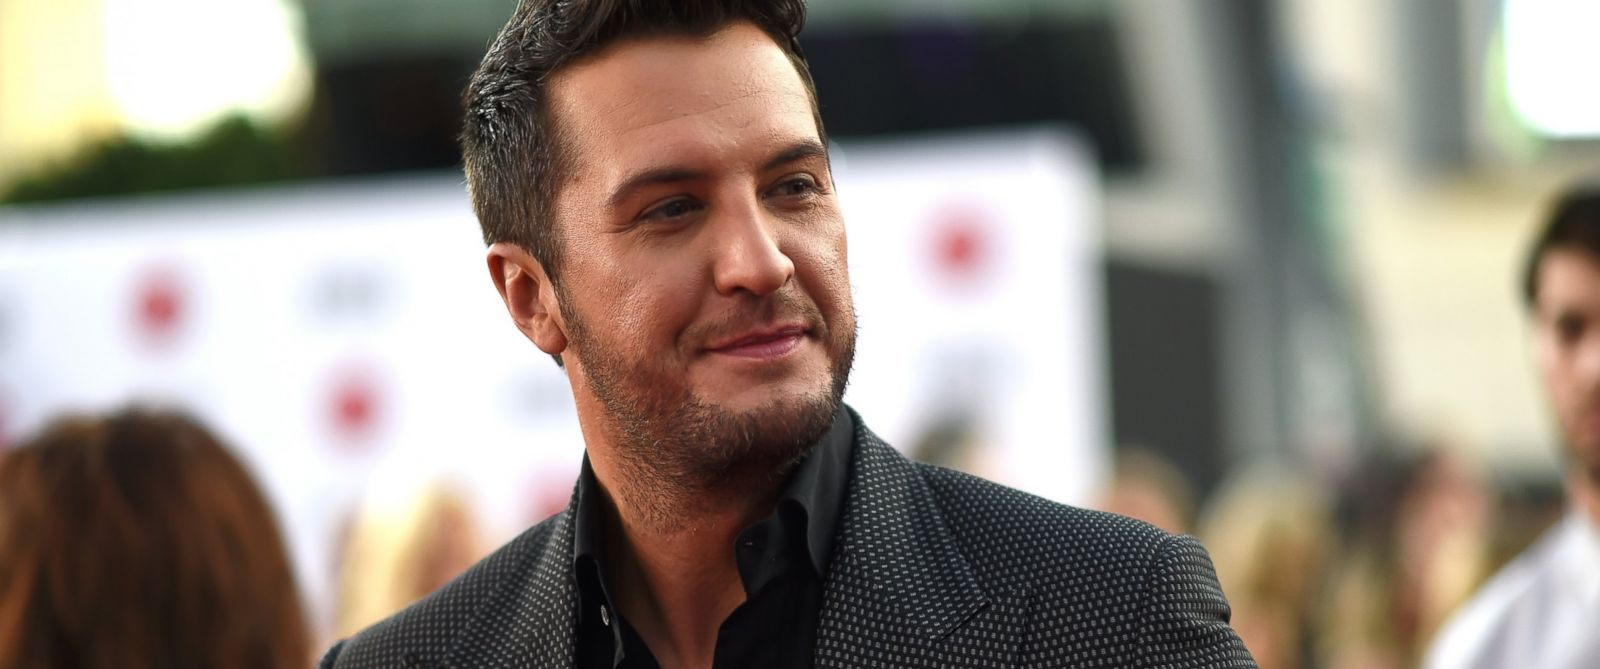 Luke Bryan Cancels Cmt Appearance After Death In The